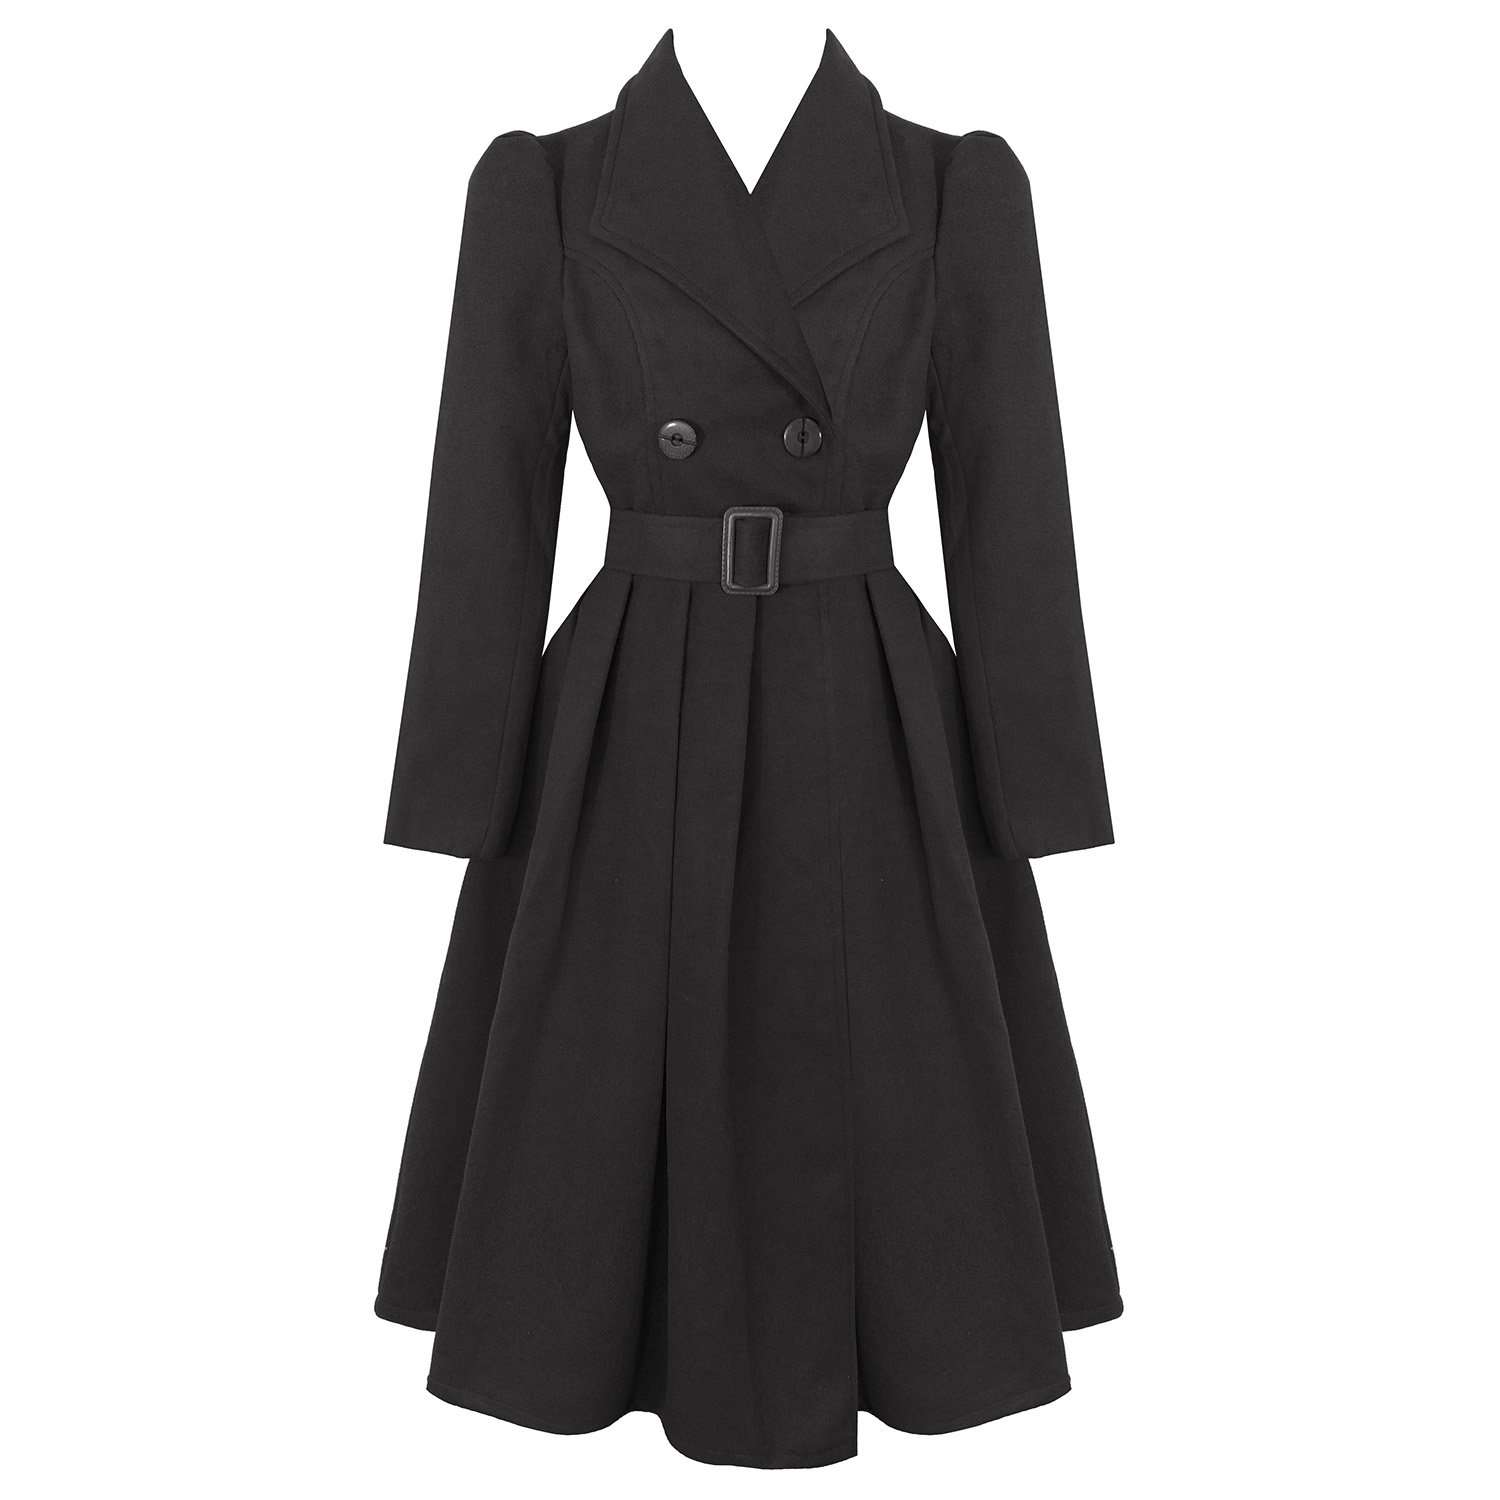 Vintage Coats & Jackets | Retro Coats and Jackets hearts and Roses London Vintage 1950s Retro Statement Military Swing Coat £77.99 AT vintagedancer.com